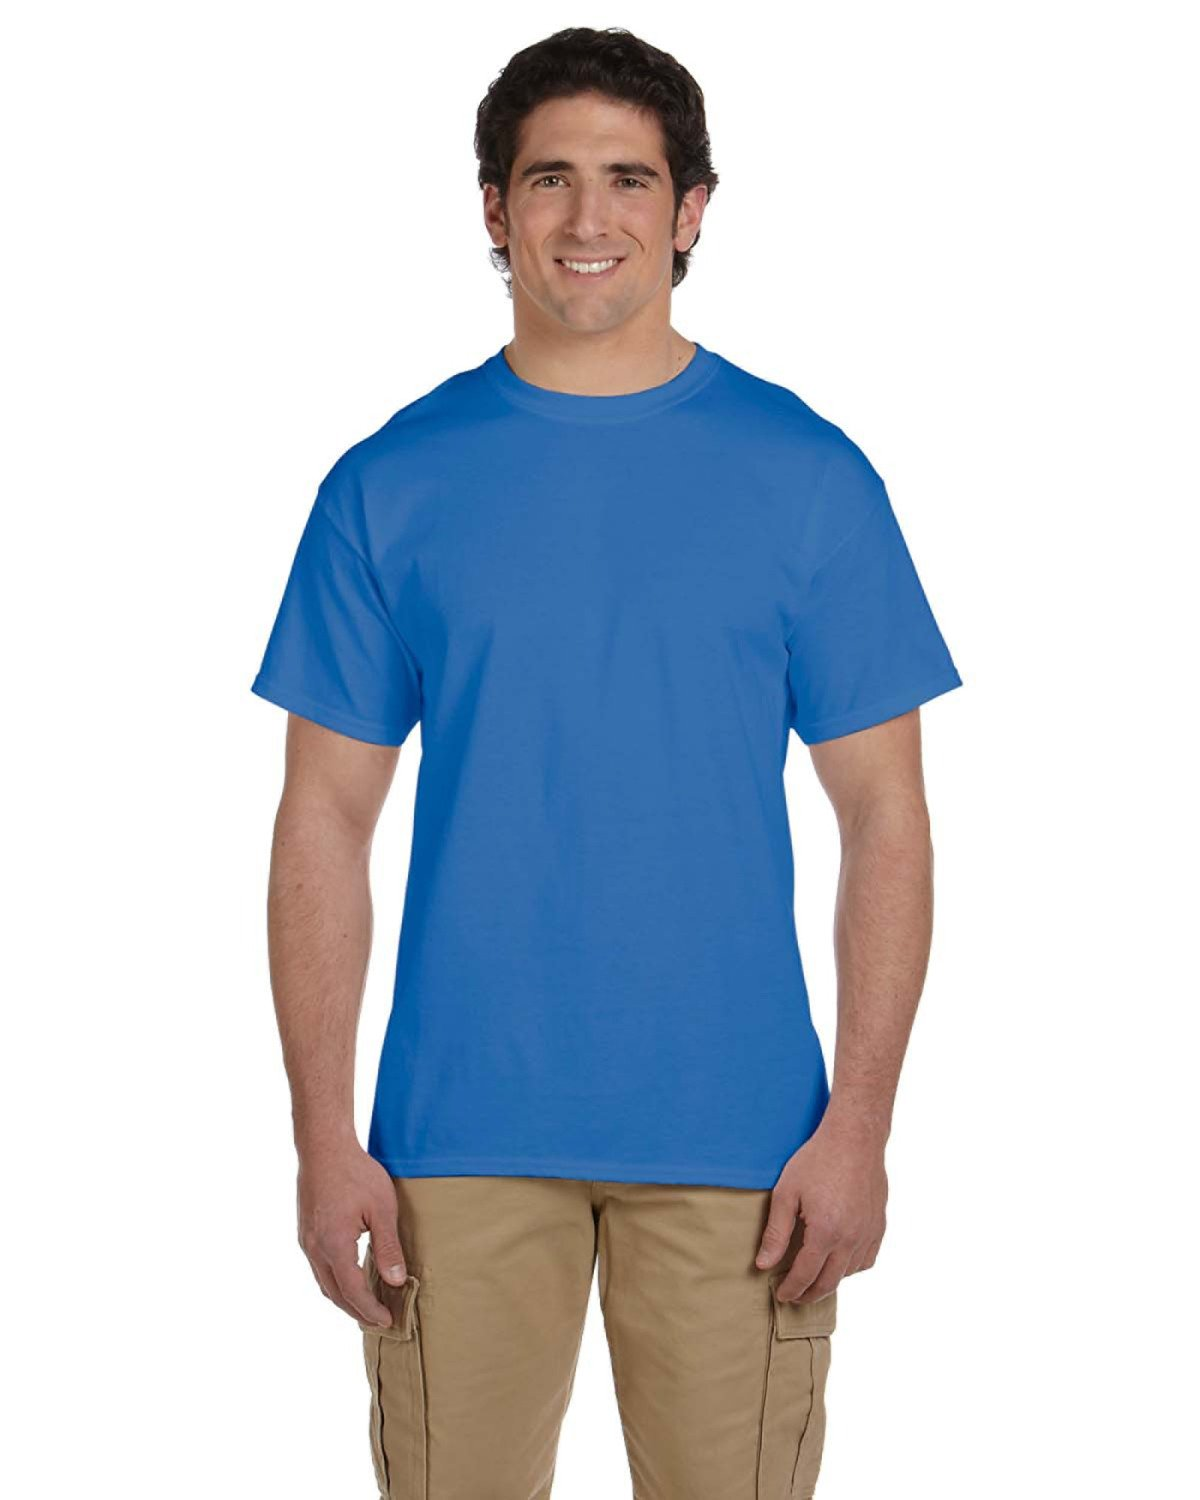 Fruit of the Loom Adult HD Cotton™ T-Shirt RETRO HTH ROYAL